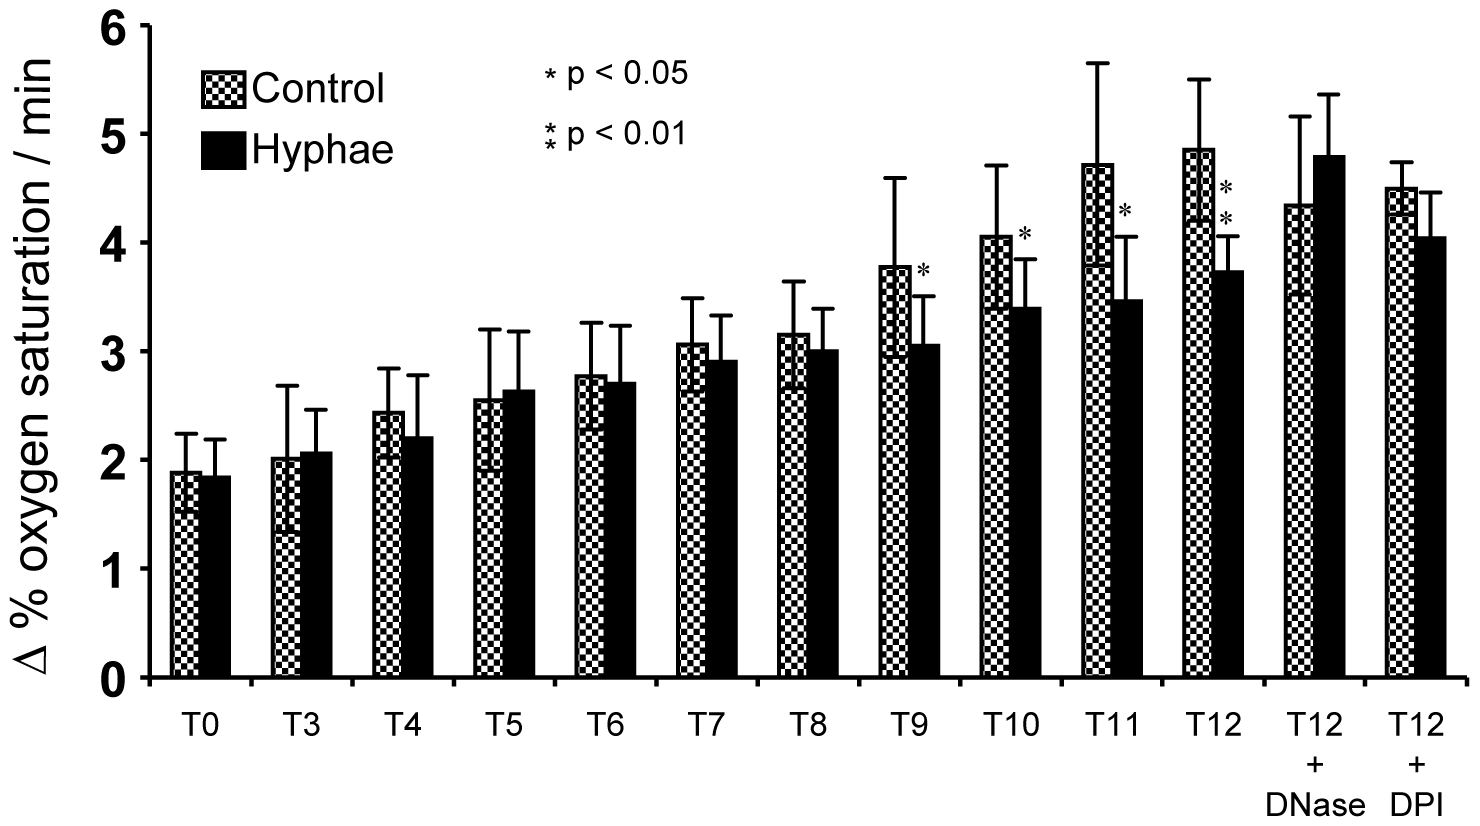 Determination of the atmospheric molecular oxygen consumption of <i>A. fumigatus</i> hyphae after co-incubation with neutrophils for 3 to 12 h.